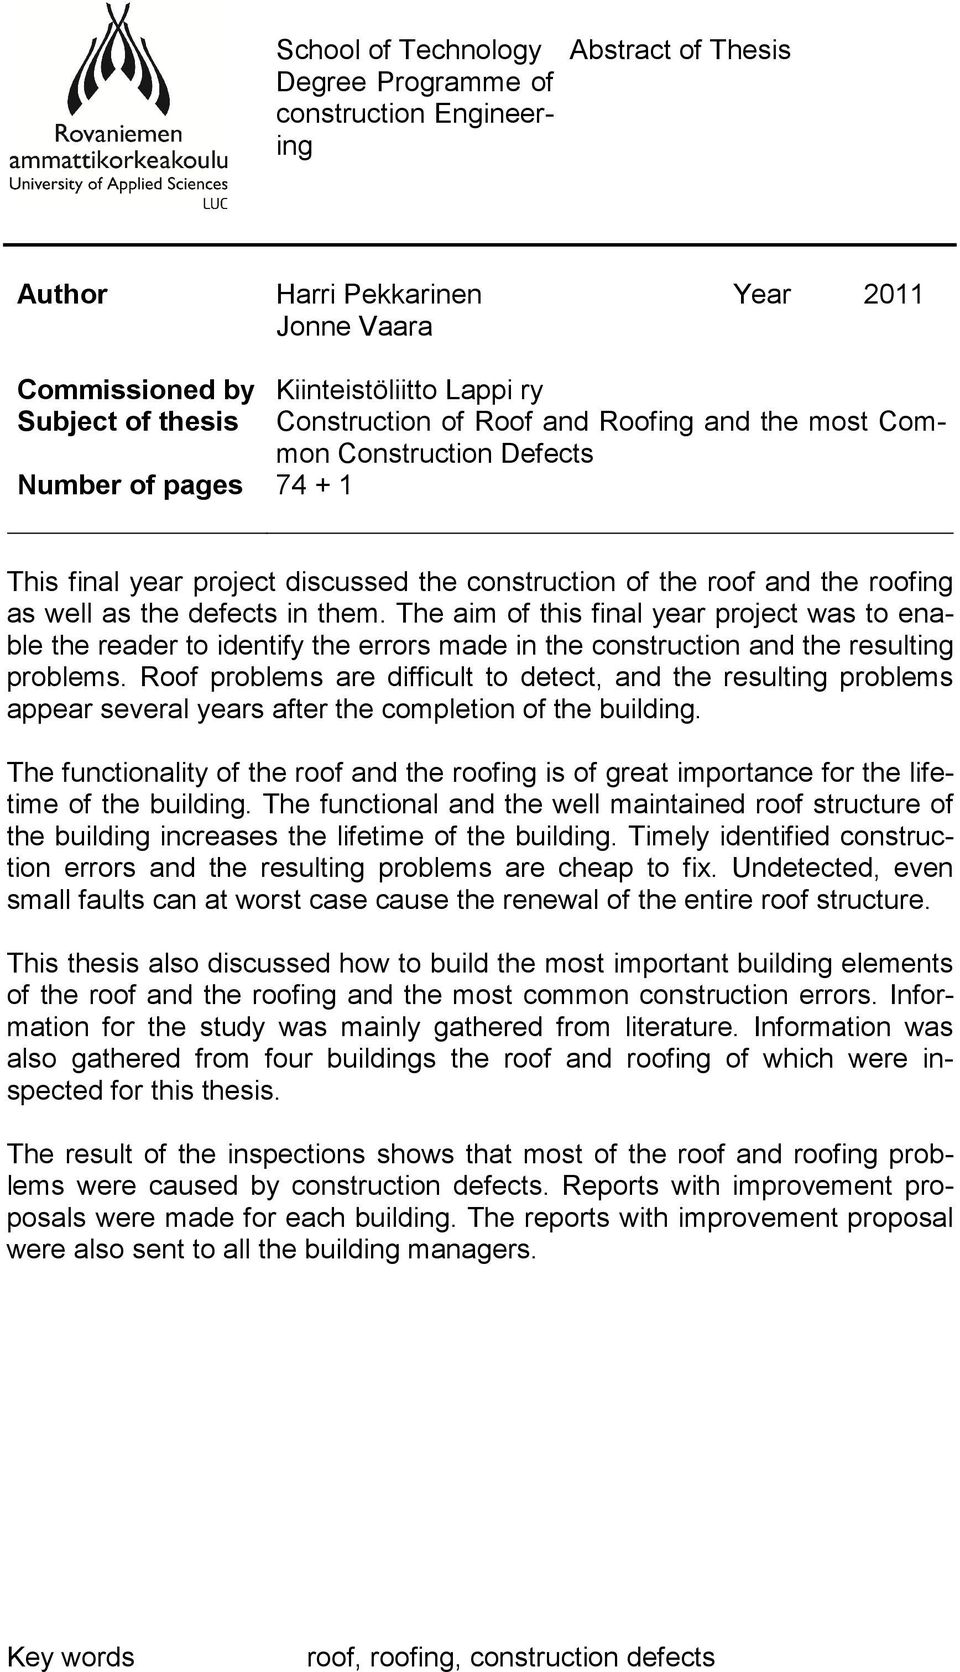 The aim of this final year project was to enable the reader to identify the errors made in the construction and the resulting problems.